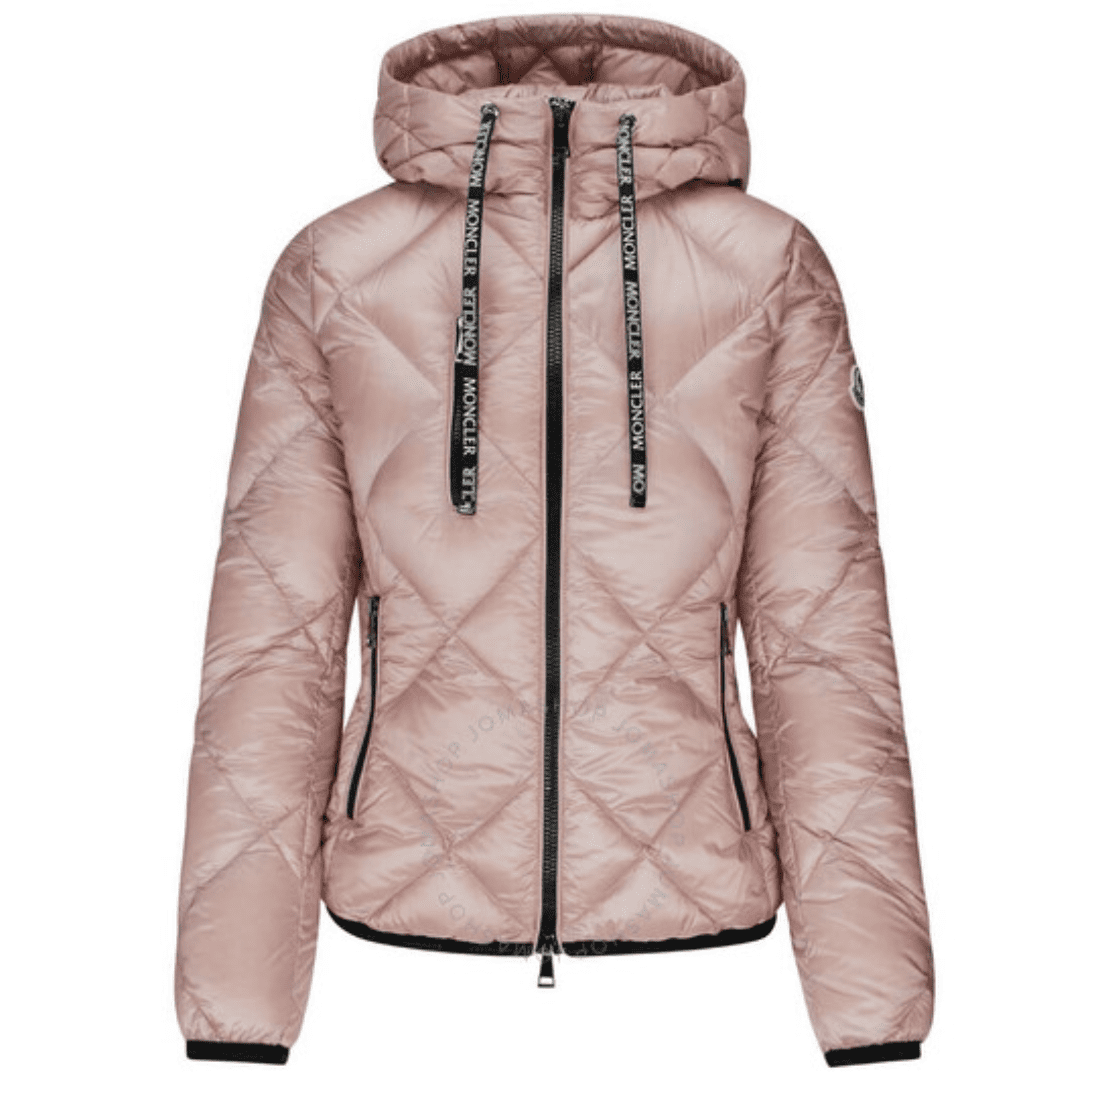 JomaShop: Up to 74% off Moncler Apparel